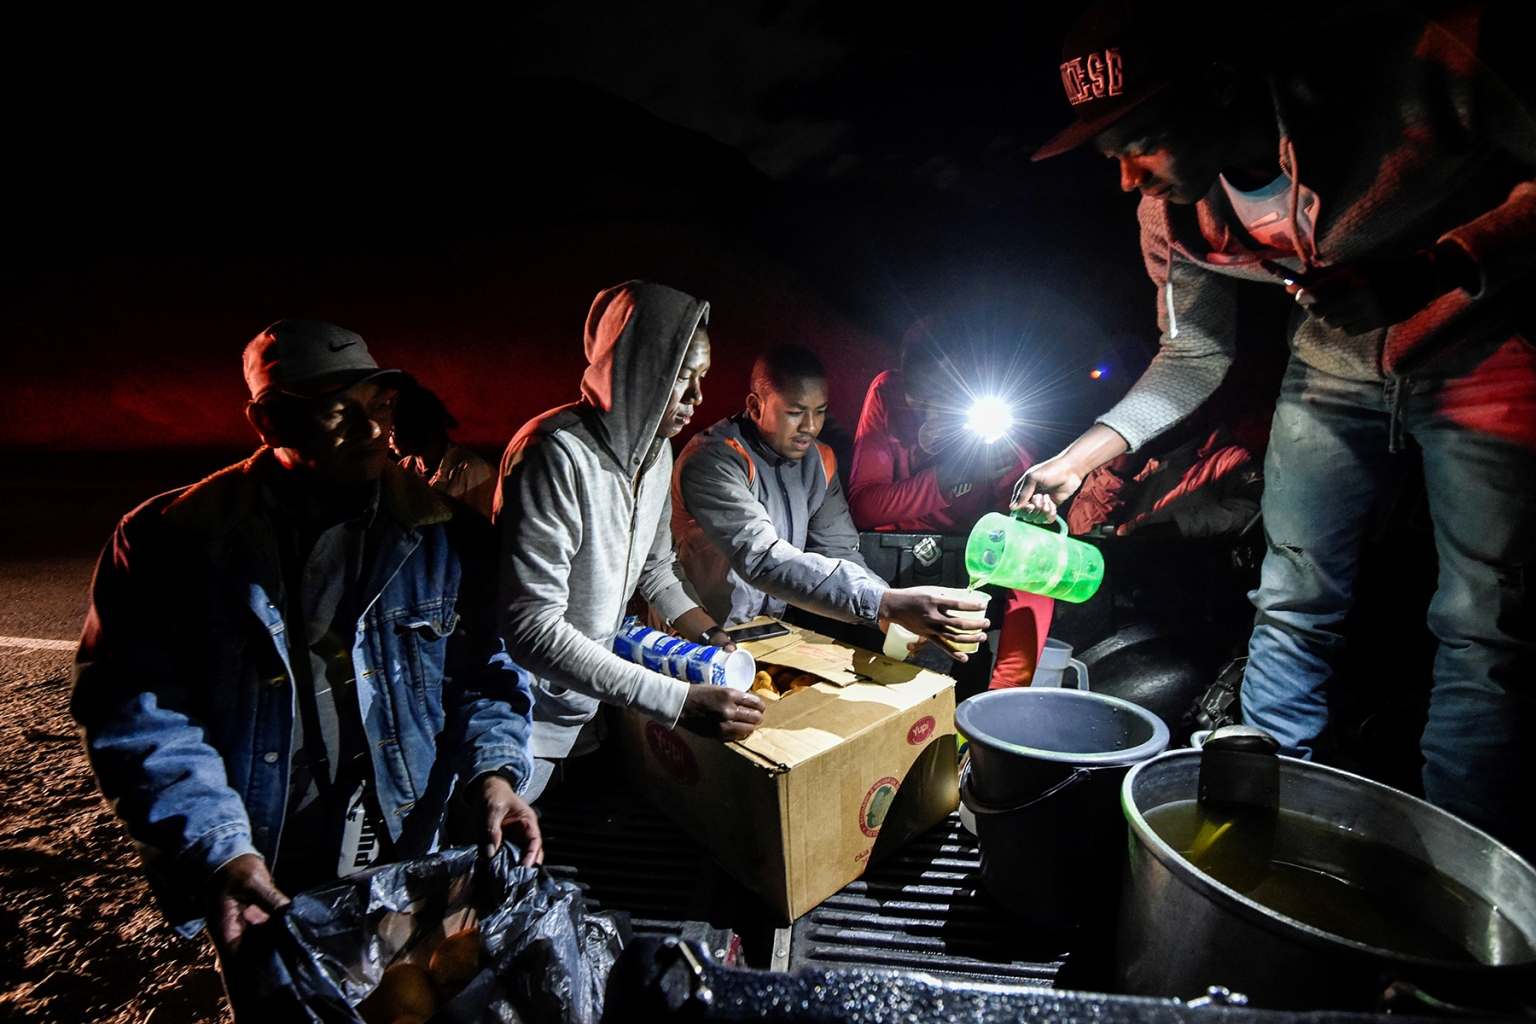 Venezuelan migrants en route to Peru receive food as they rest along the Pan-American Highway between Tulcan and Ibarra in Ecuador after entering the country from Colombia on Aug. 21. LUIS ROBAYO/AFP/Getty Images